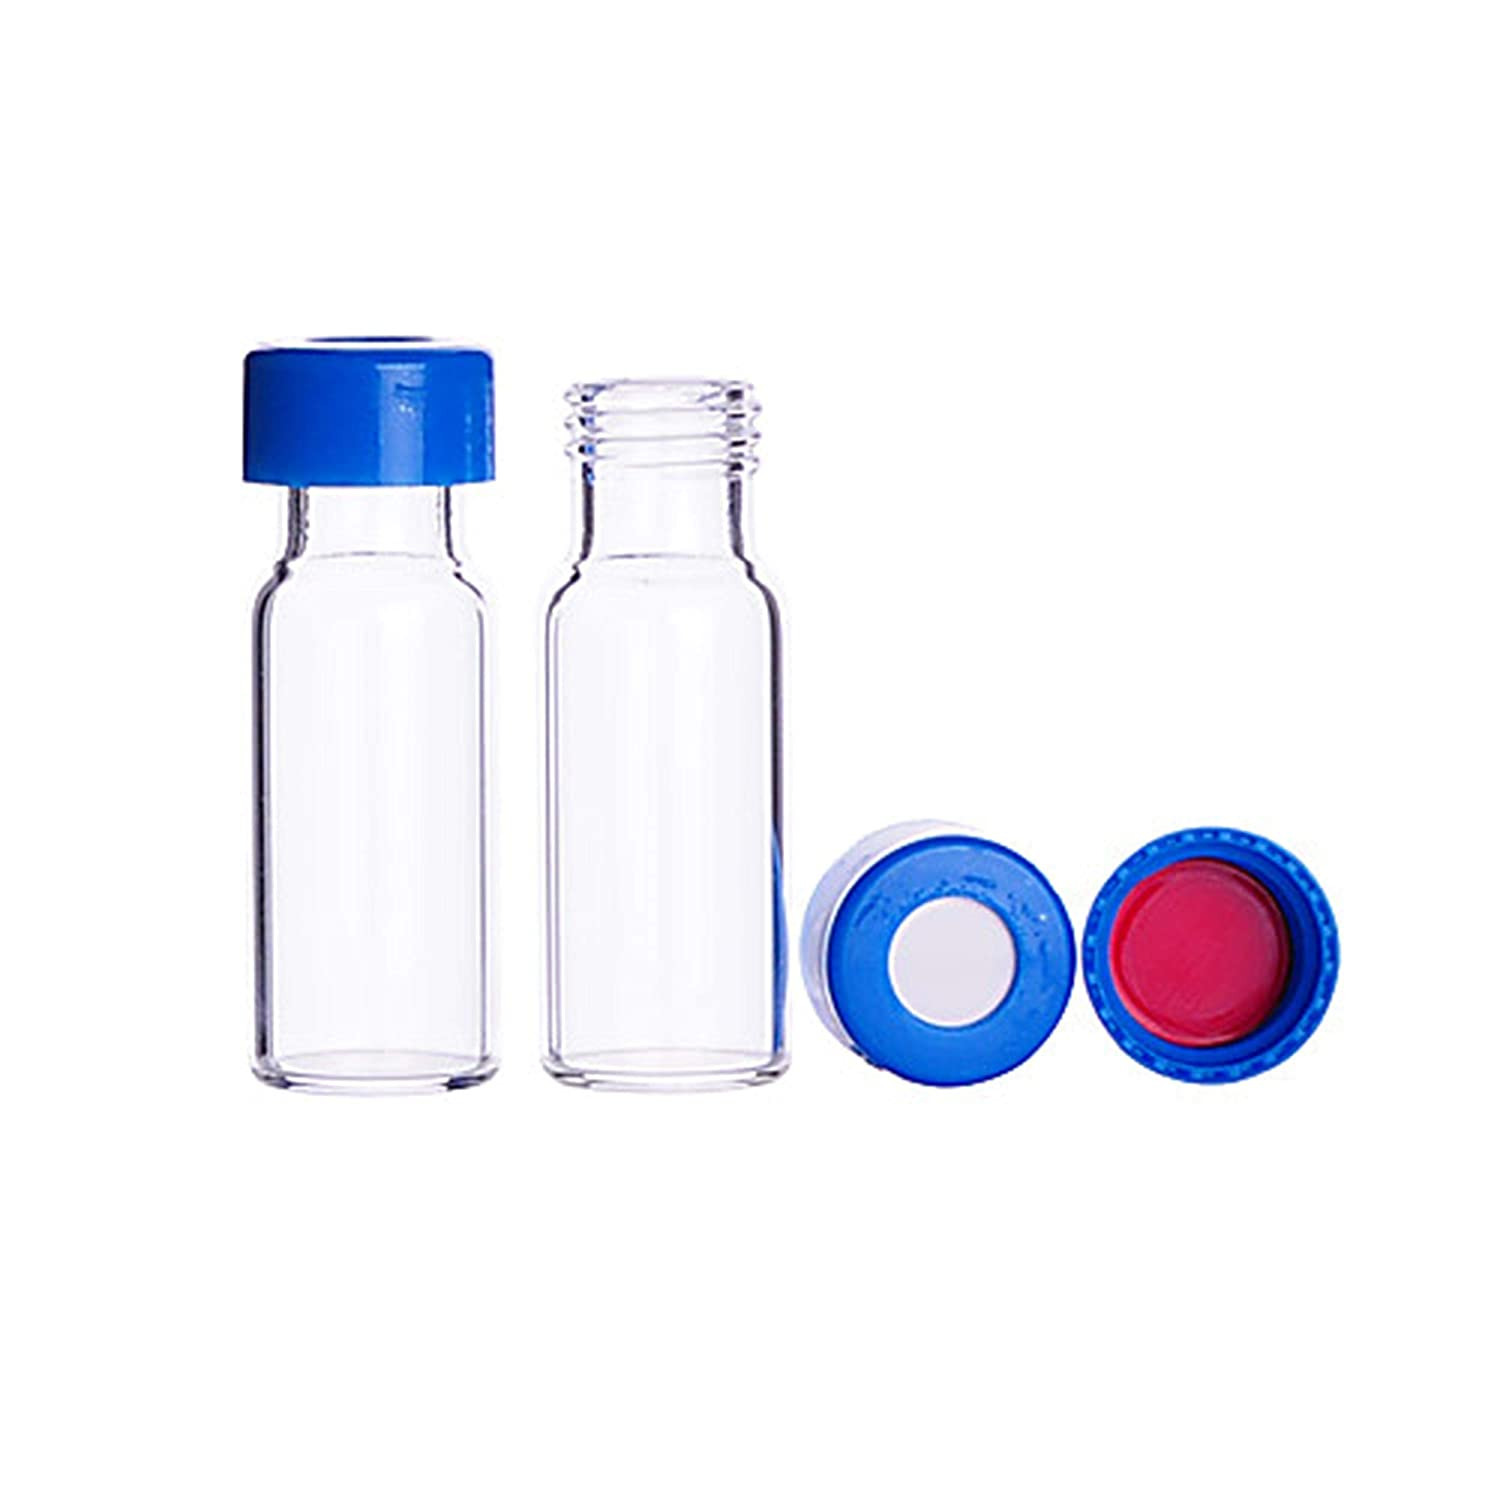 Microliter 2021 autumn and winter new 09-1030RT-A Clear Vial Assembled Great interest AlumiTin Kit an with